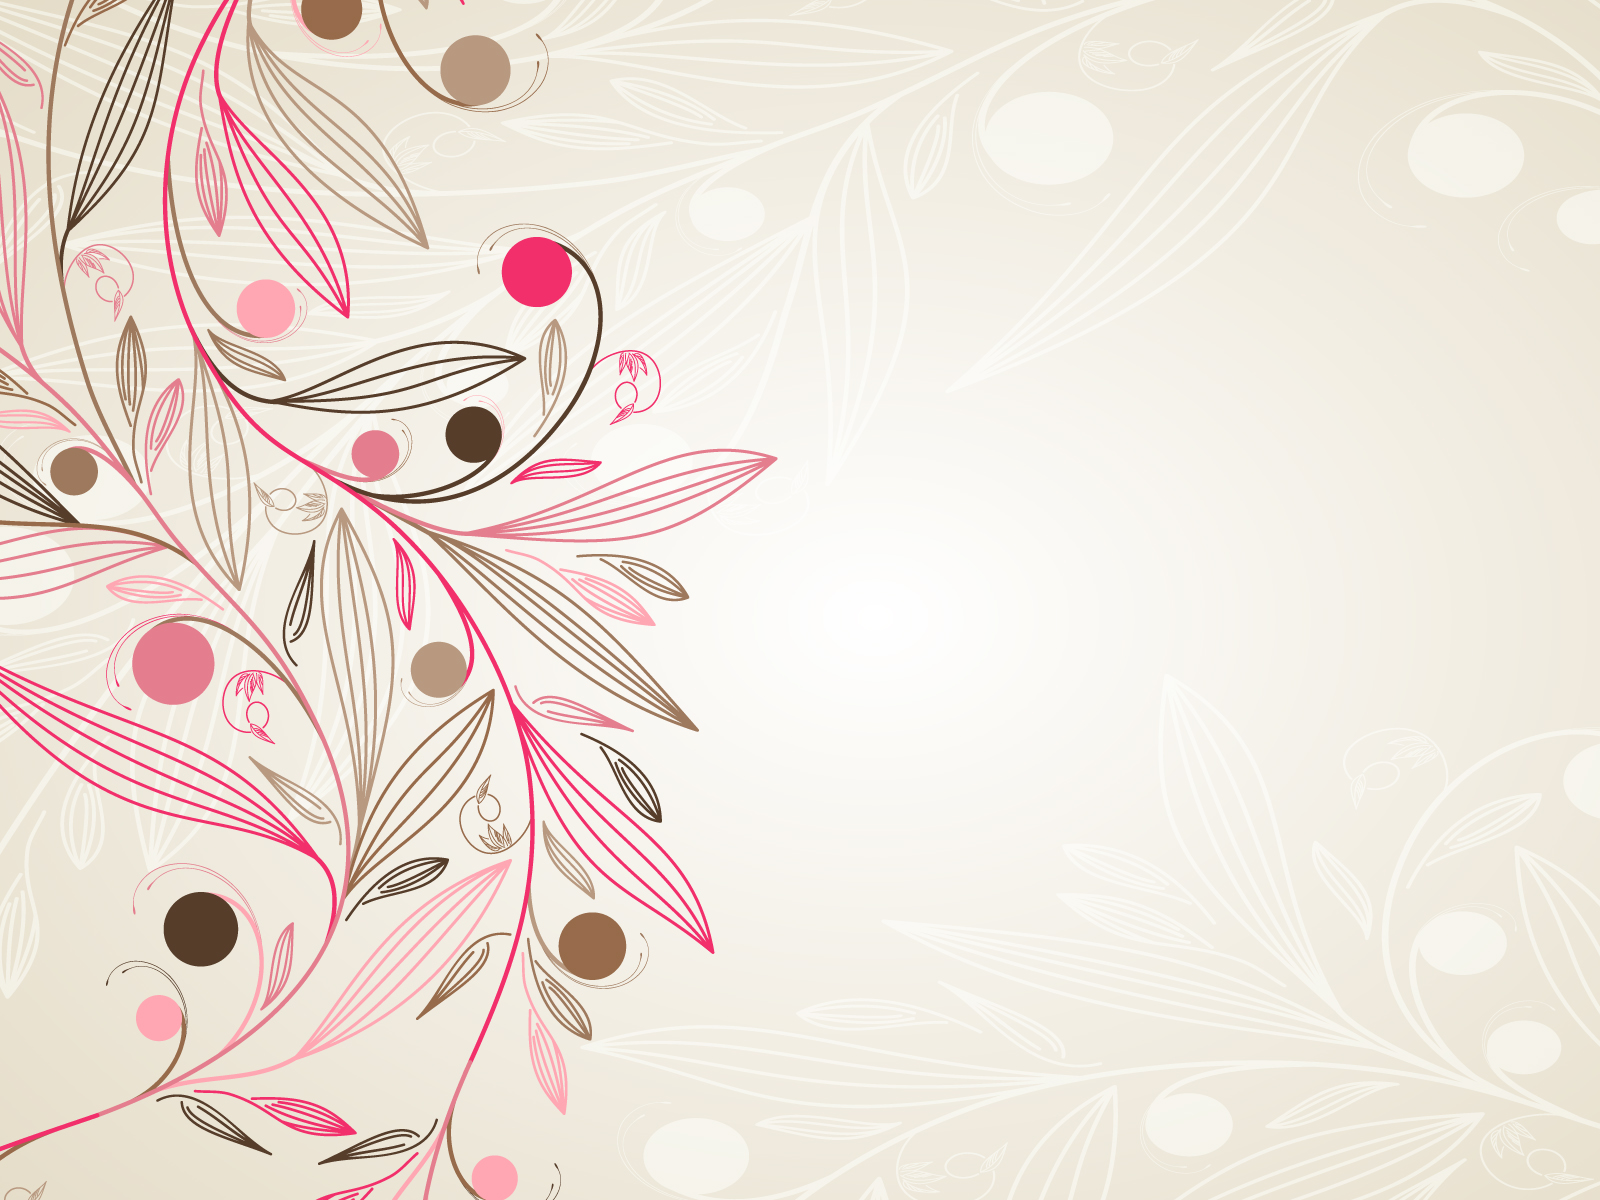 Floral Simple Download PowerPoint Backgrounds   PPT Backgrounds 1600x1200